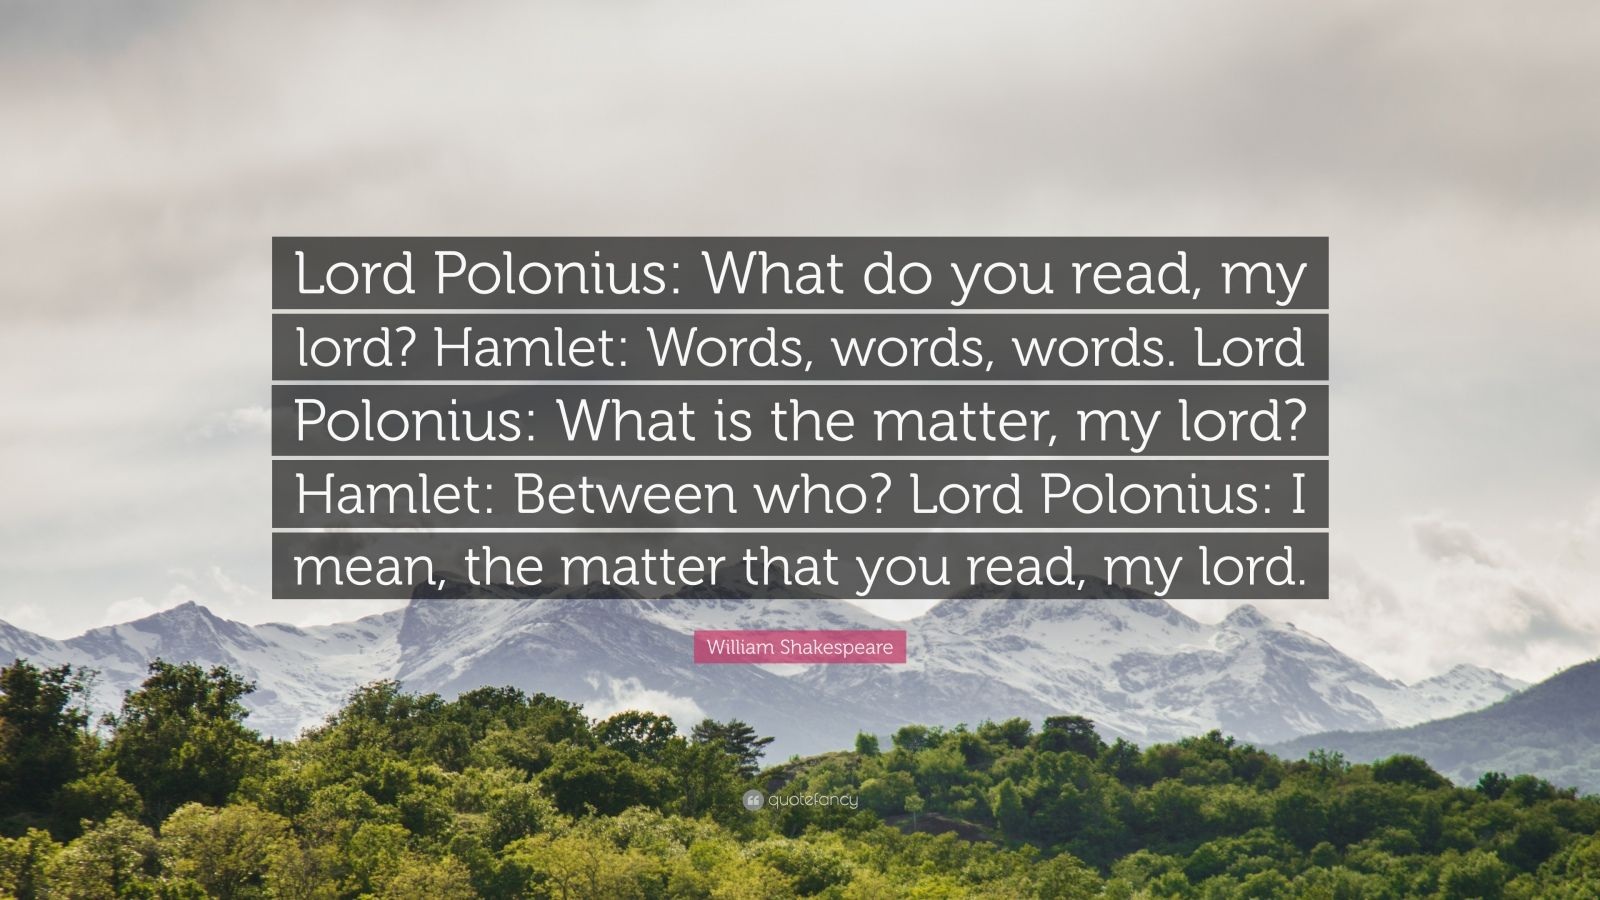 "William Shakespeare Quote: ""Lord Polonius: What do you read, my lord? Hamlet: Words, words, words. Lord Polonius: What is the matter, my lord? Hamlet: Between who? Lord Polonius: I mean, the matter that you read, my lord."""